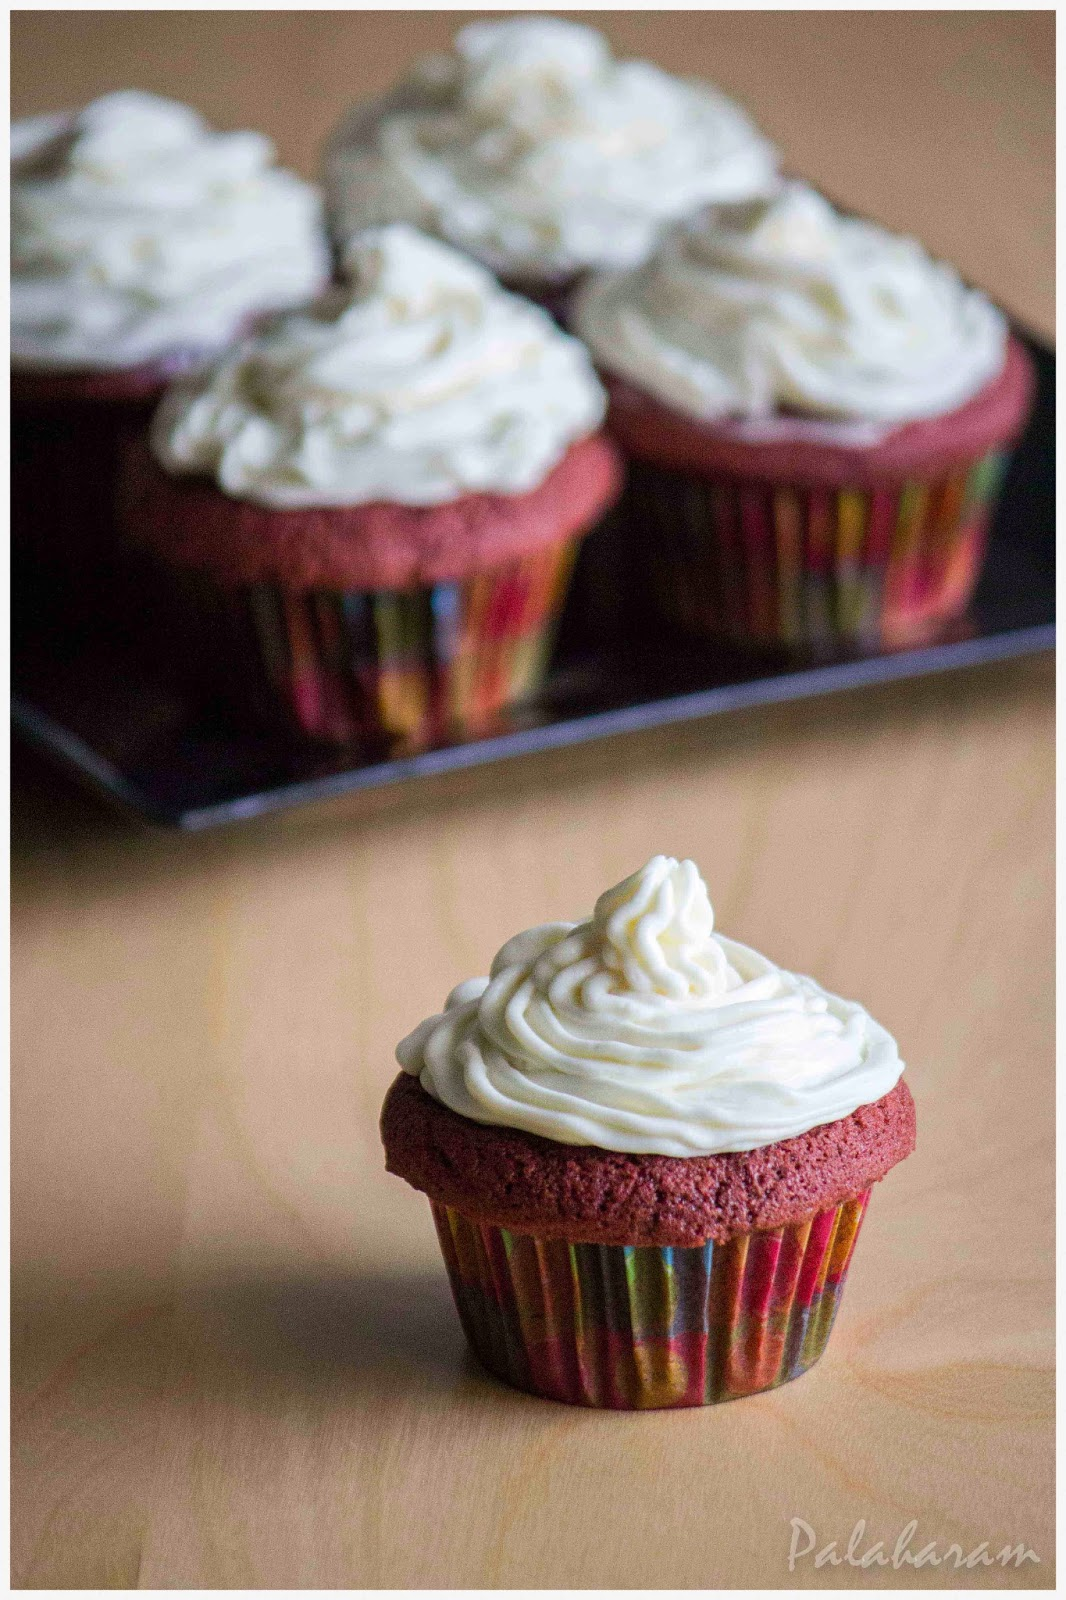 Palaharam: Red Velvet Cupcakes with Cream Cheese Frosting